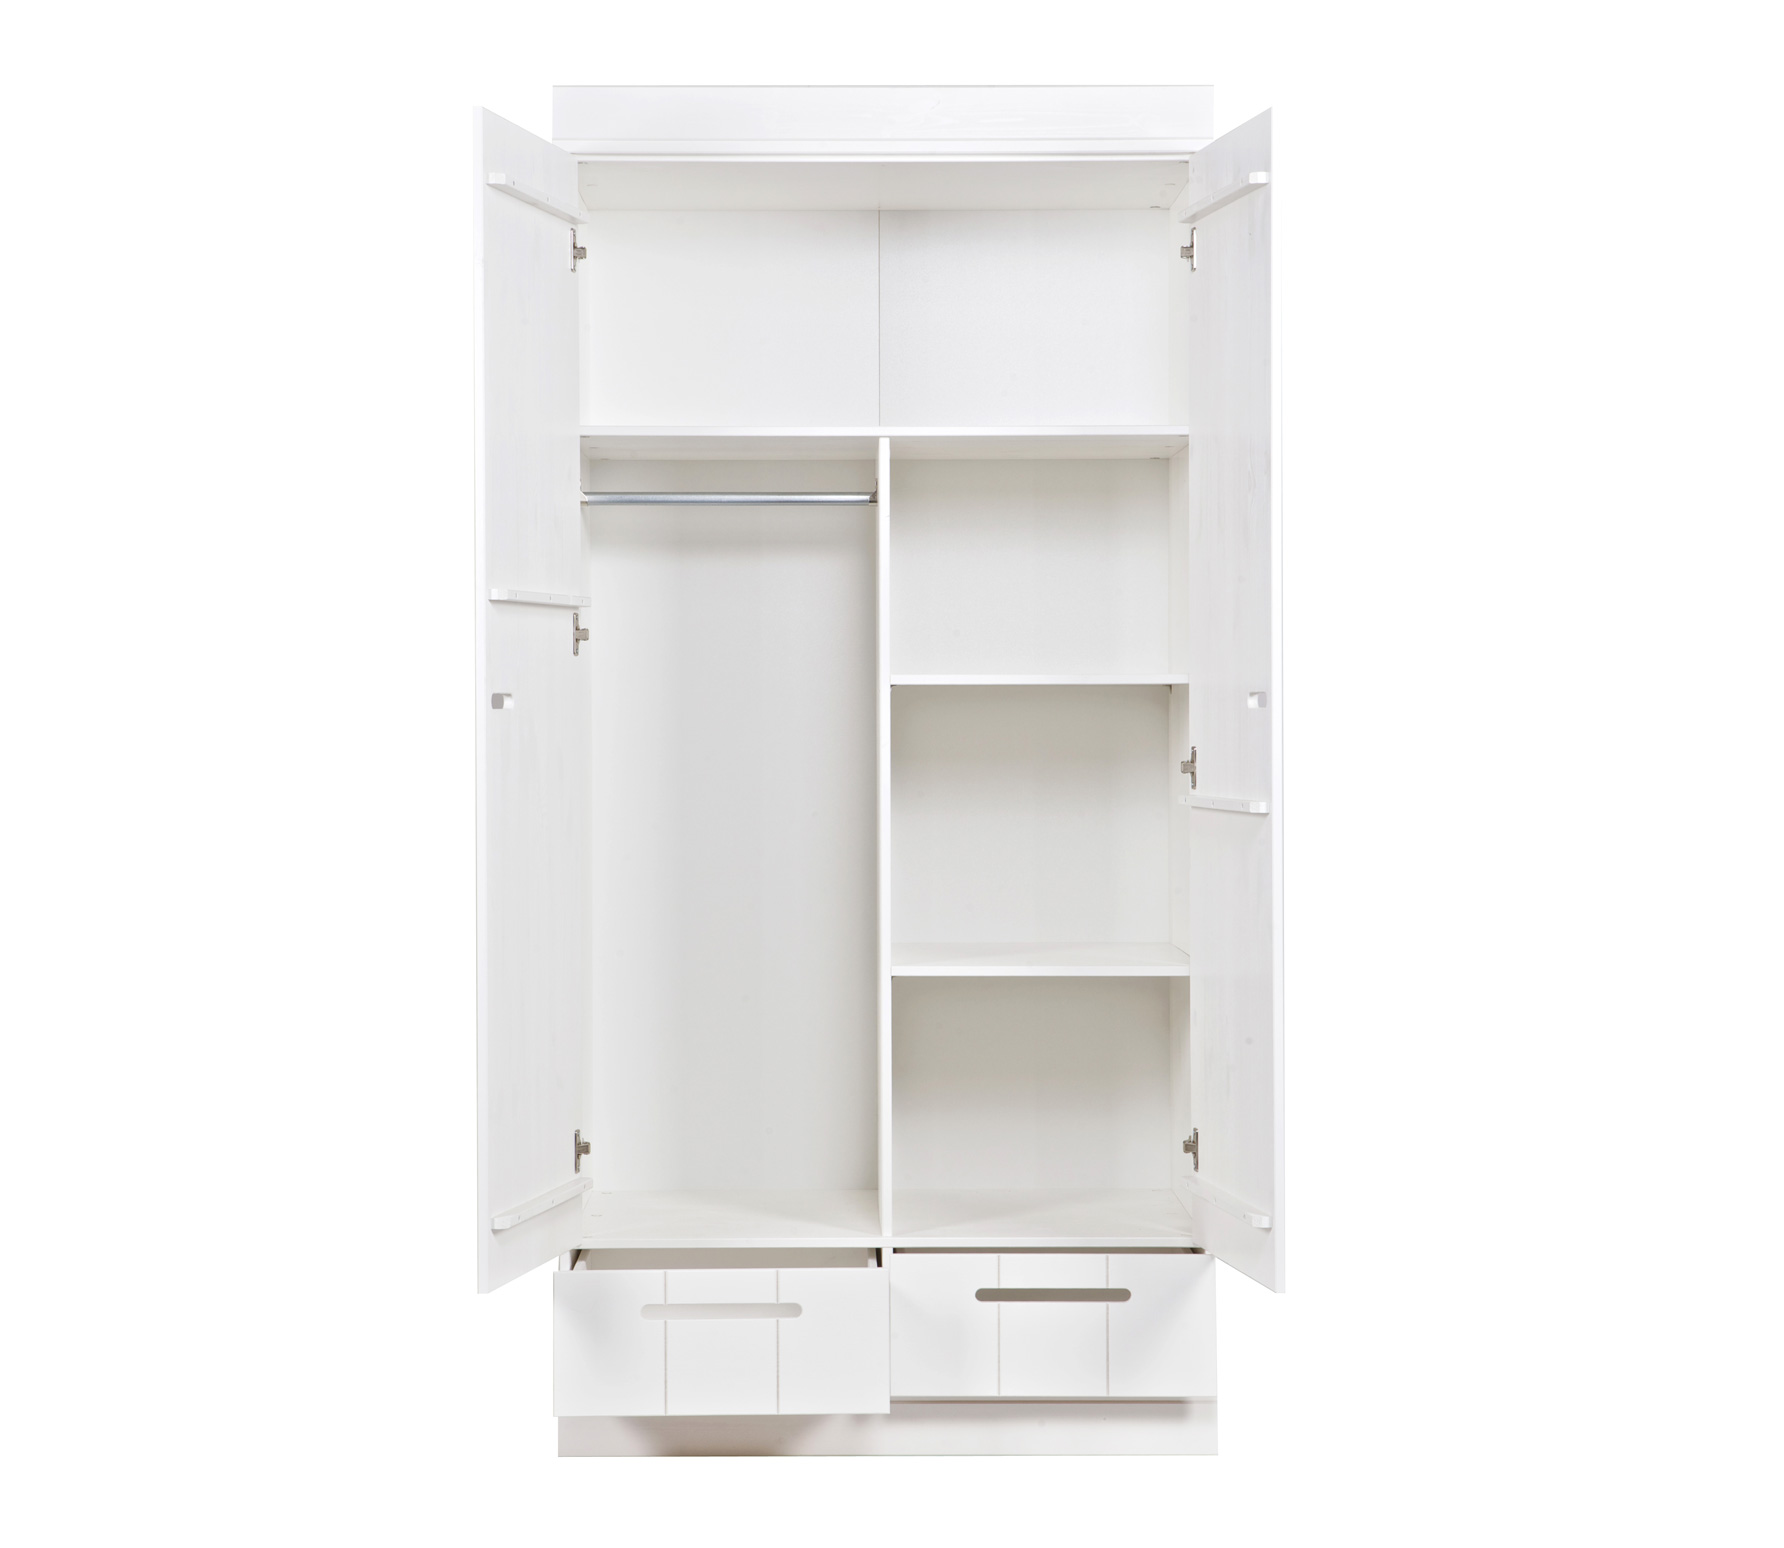 2 Door Cupboard Inside Designs connect 2-door locker wardrobe with 2 drawers, additional interior